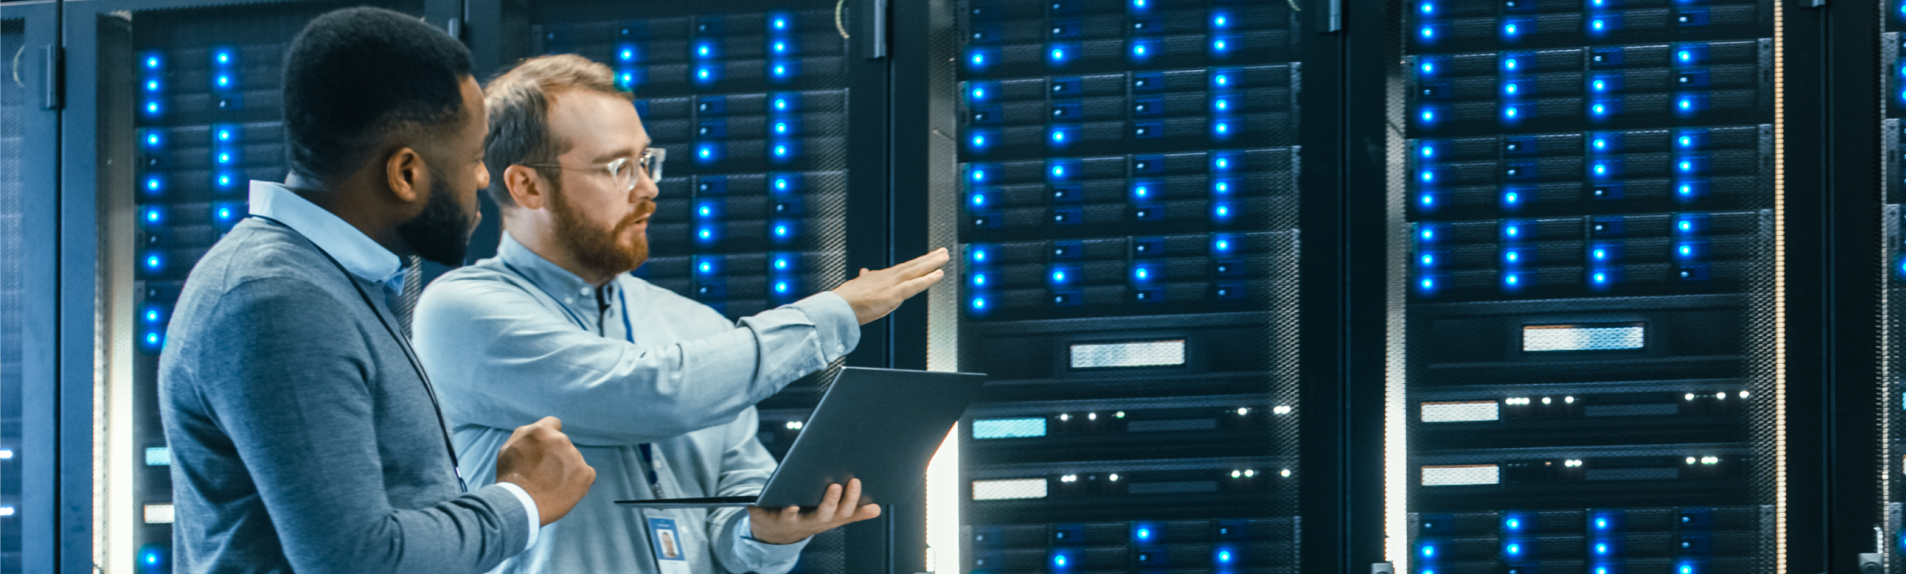 Two workers conversing in front of a large data center